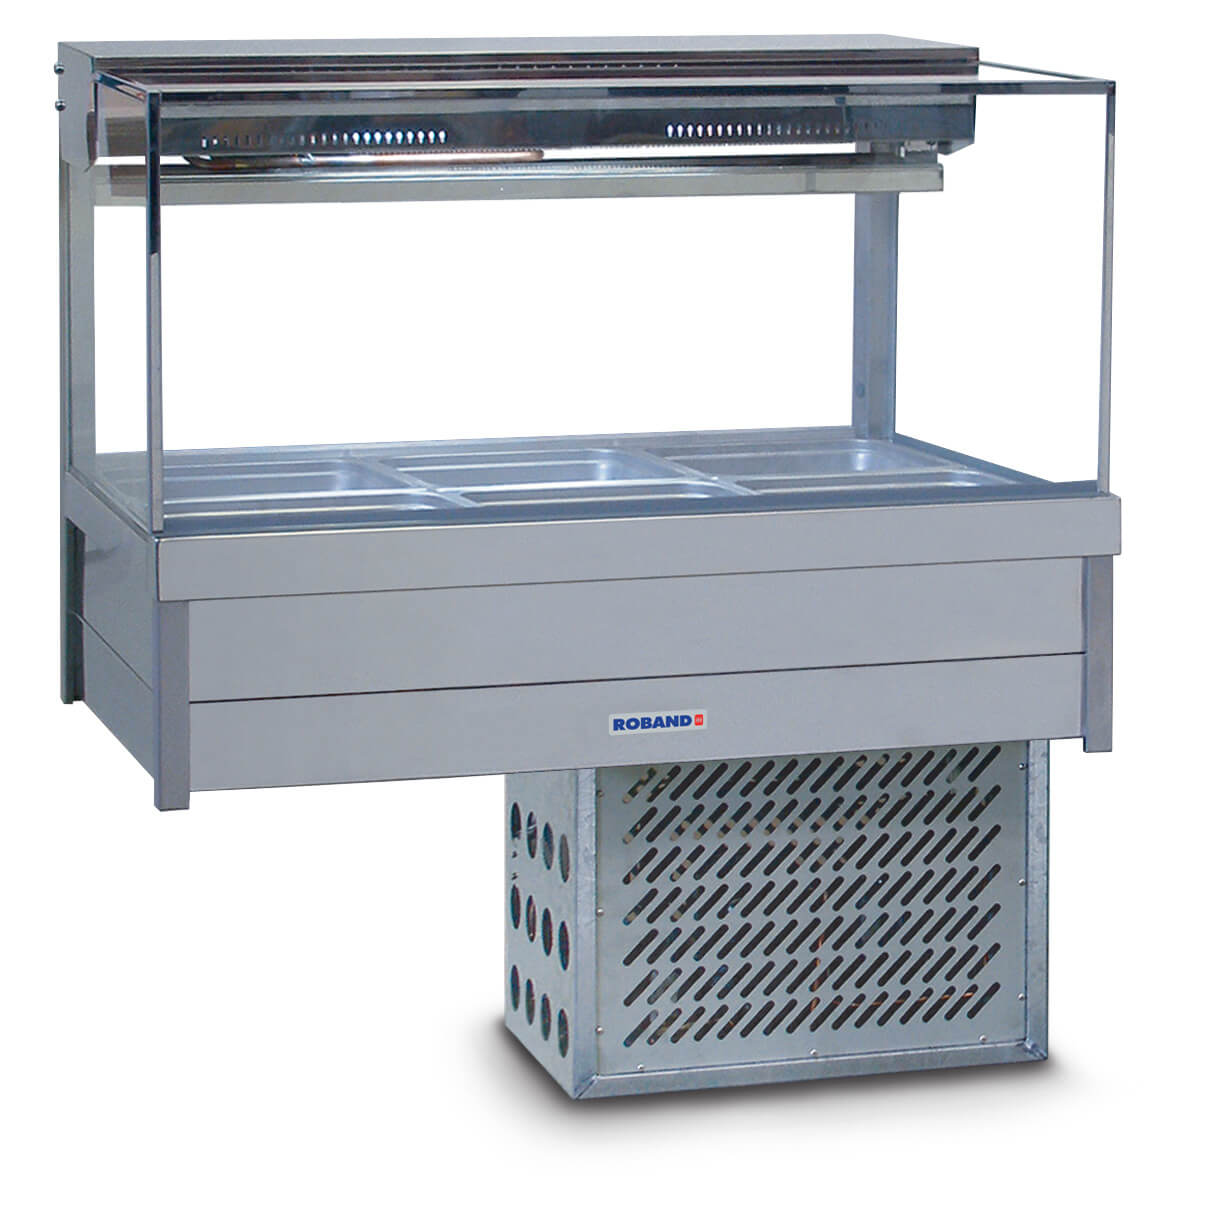 Roband SRX23RD Square Glass Refrigerated Display Bar, 6 pans